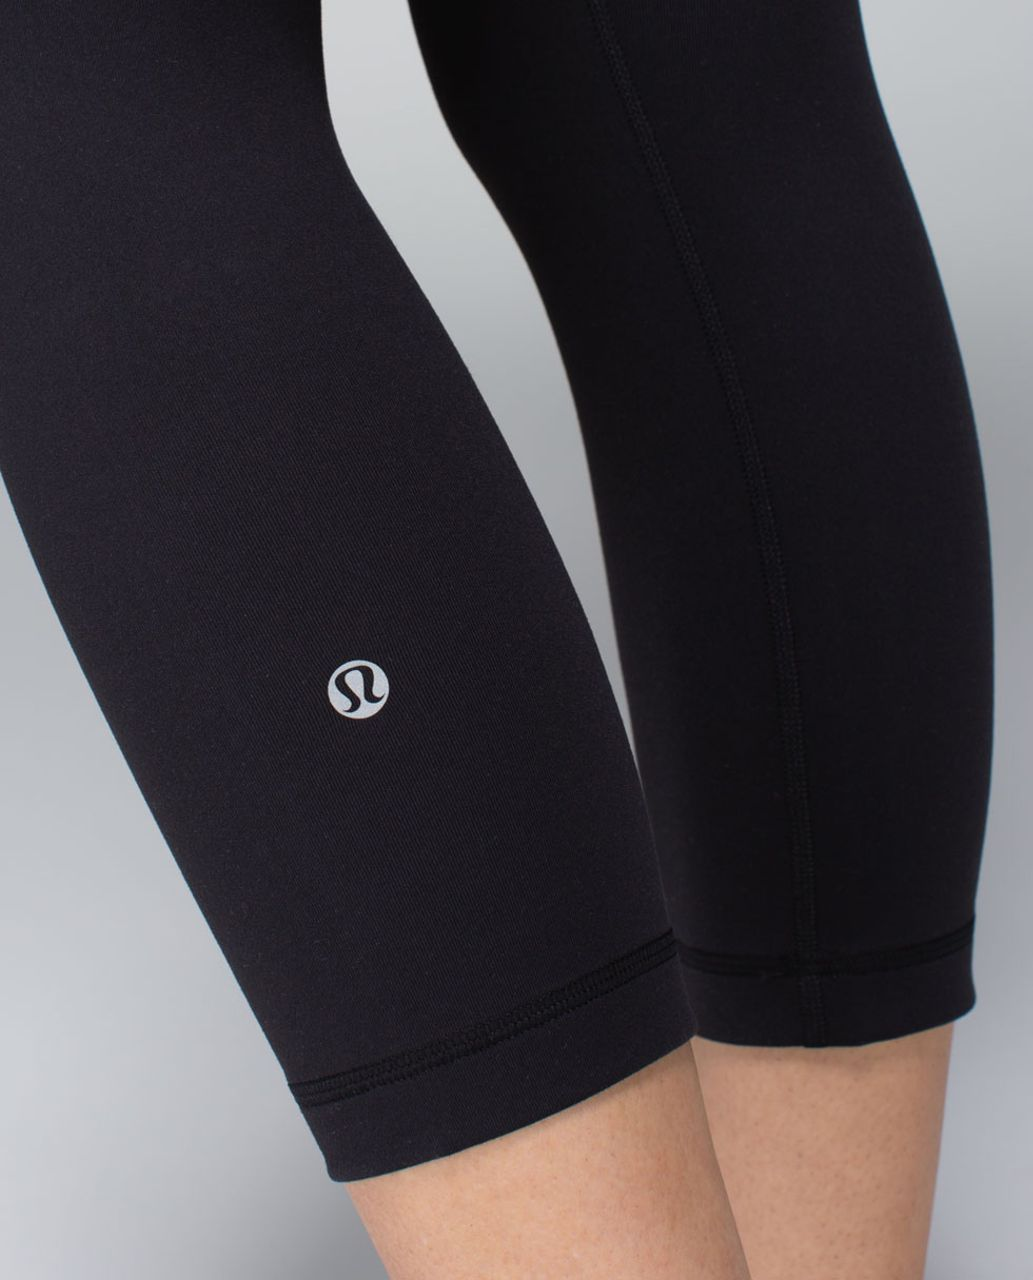 Lululemon Wunder Under Crop *Full-On Luon - Black / Su14 Quilt 6